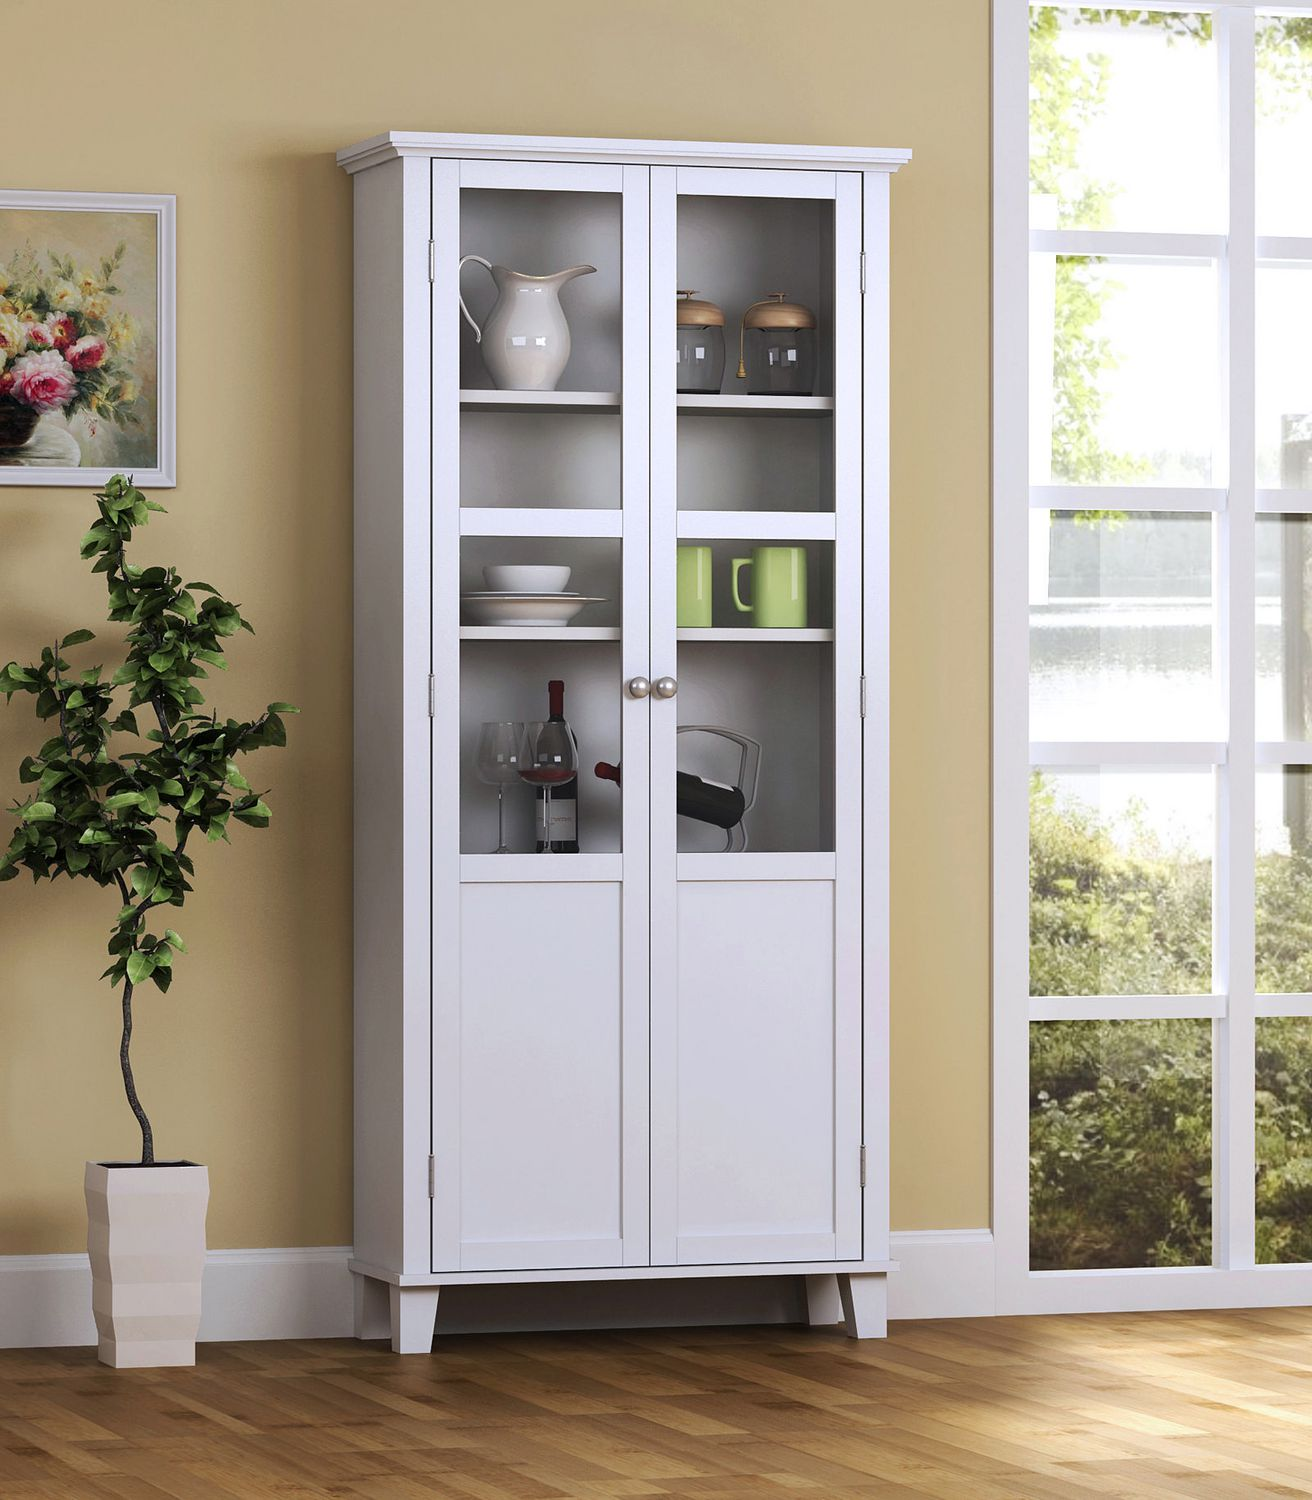 Homestar 2 Door Storage Cabinet in White | Walmart Canada